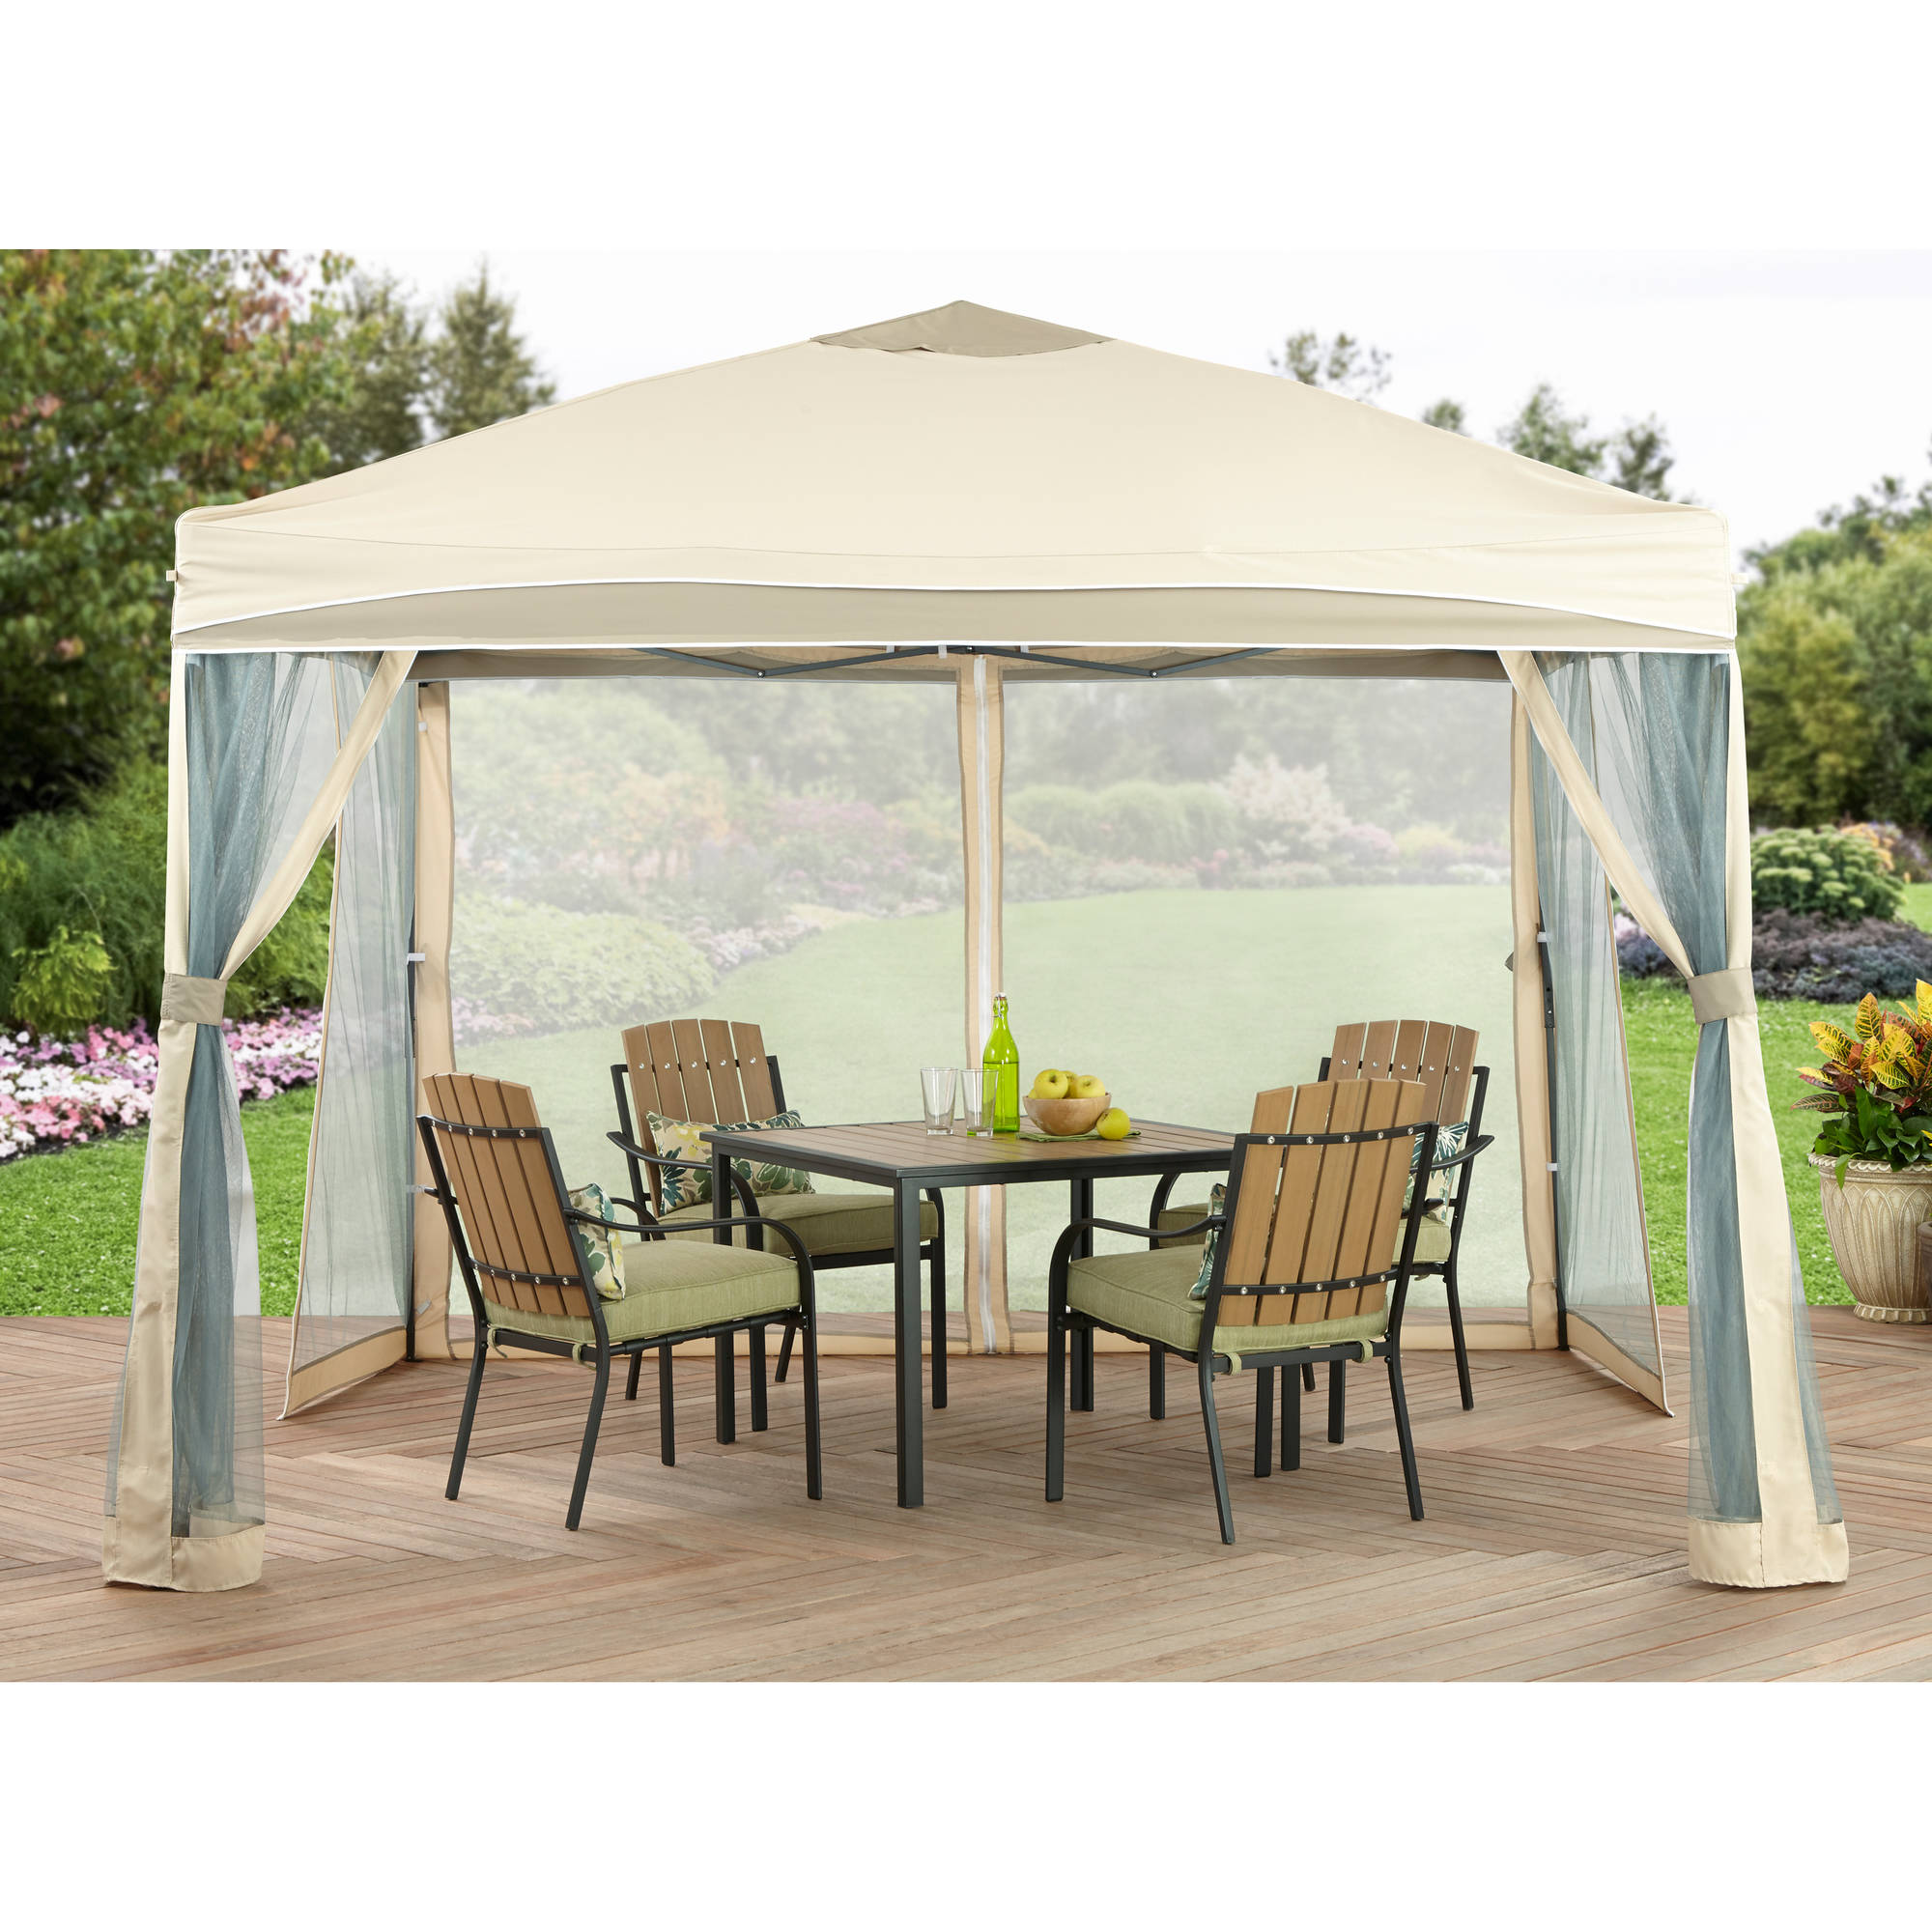 Better Homes And Gardens Lawrence Portable Patio Gazebo 10 X